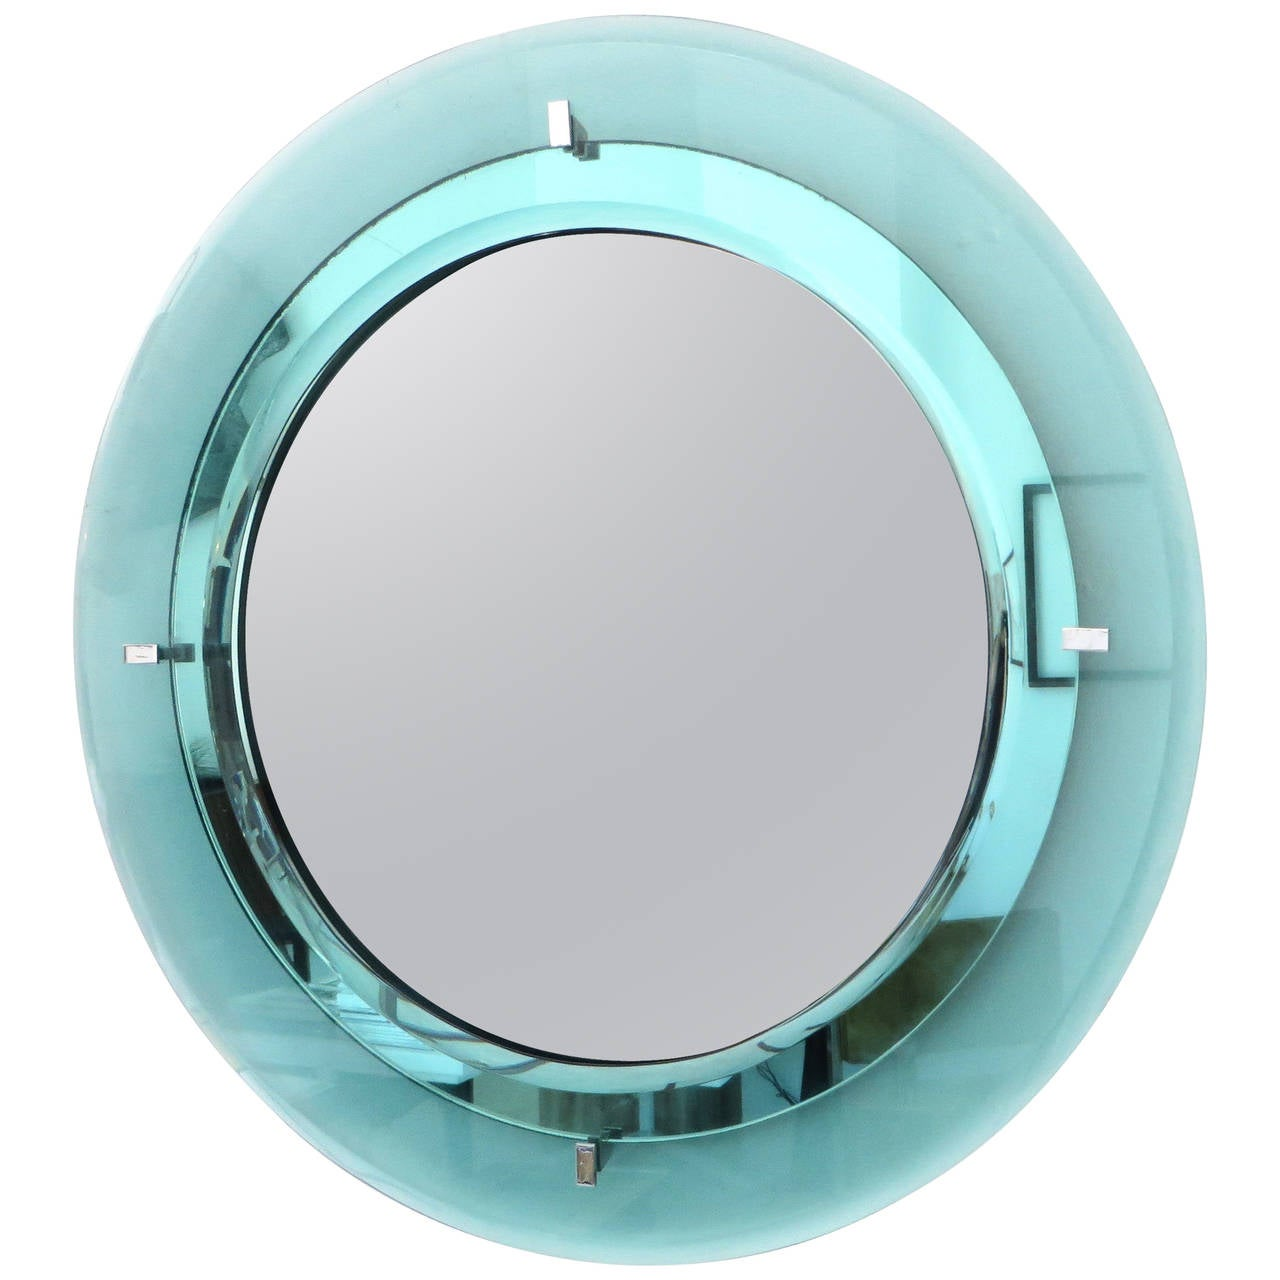 Pale Aqua Blue Italian Fontana Arte Round Beveled Mirror For